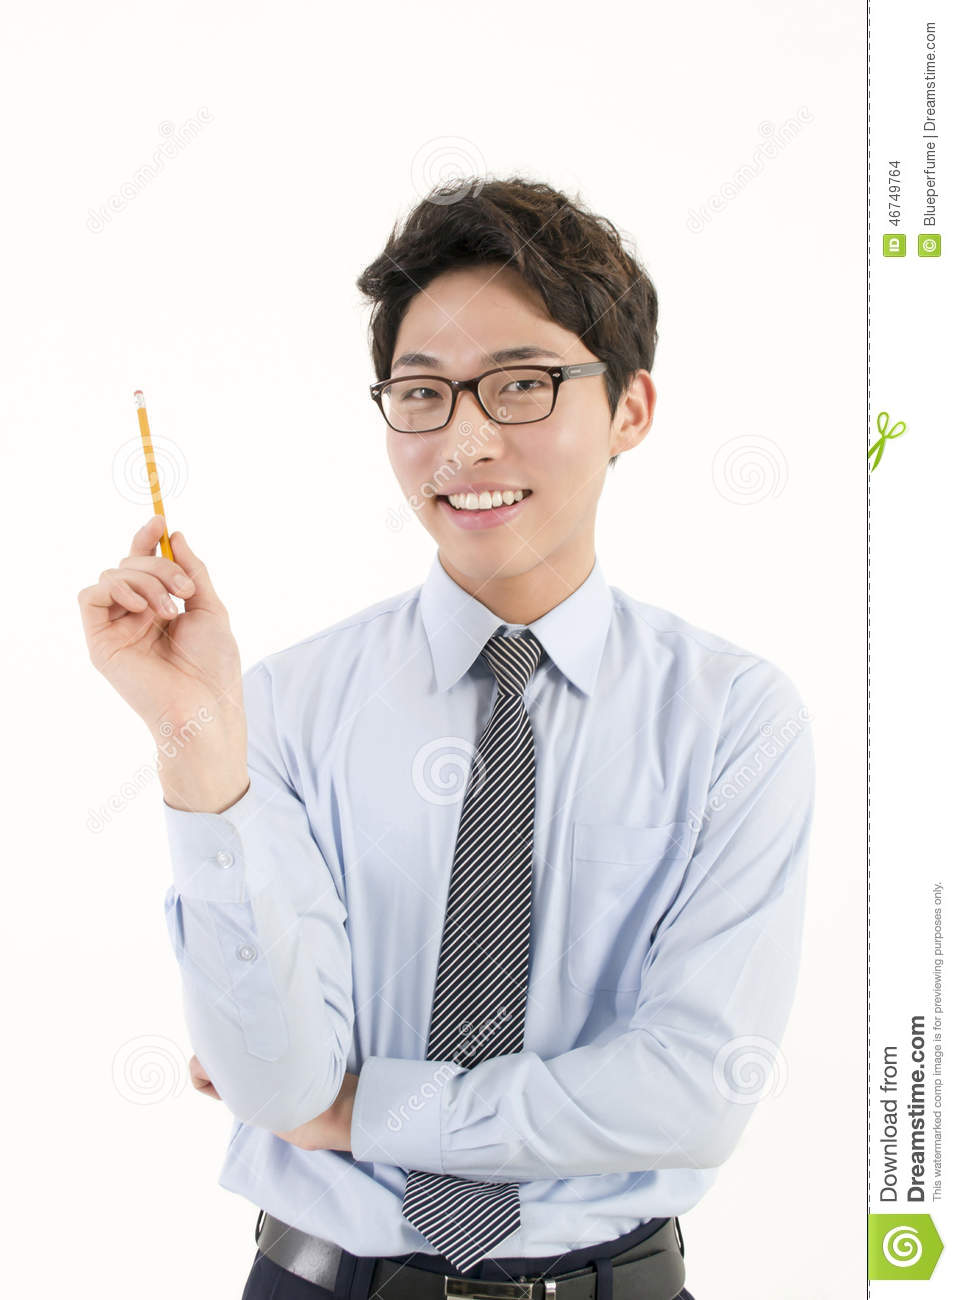 Asian Male Student With A Pencil Stock Photo Image 46749764